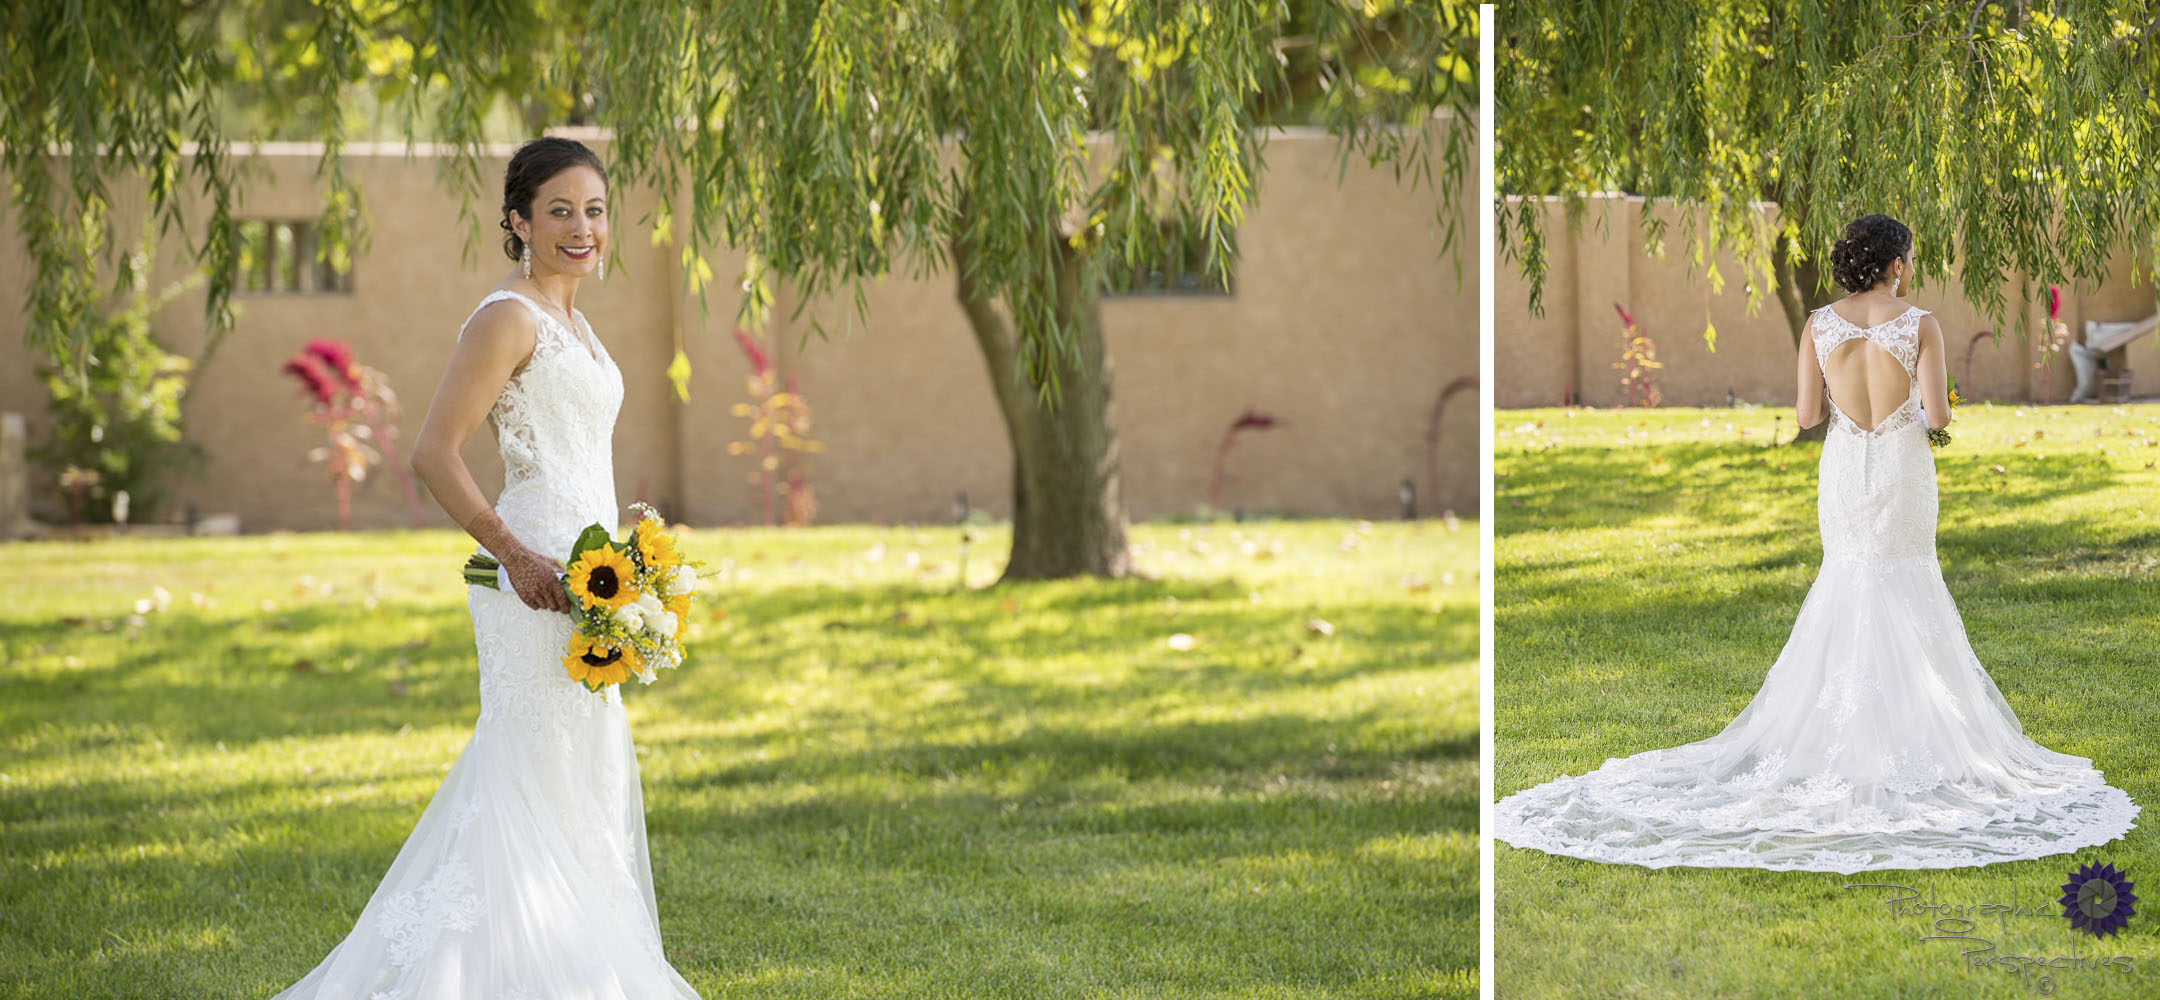 Albuquerque Wedding Photographers | Bridal Portraits | Photographic Perspectives | New Mexico Bride | New Mexico Wedding Photography